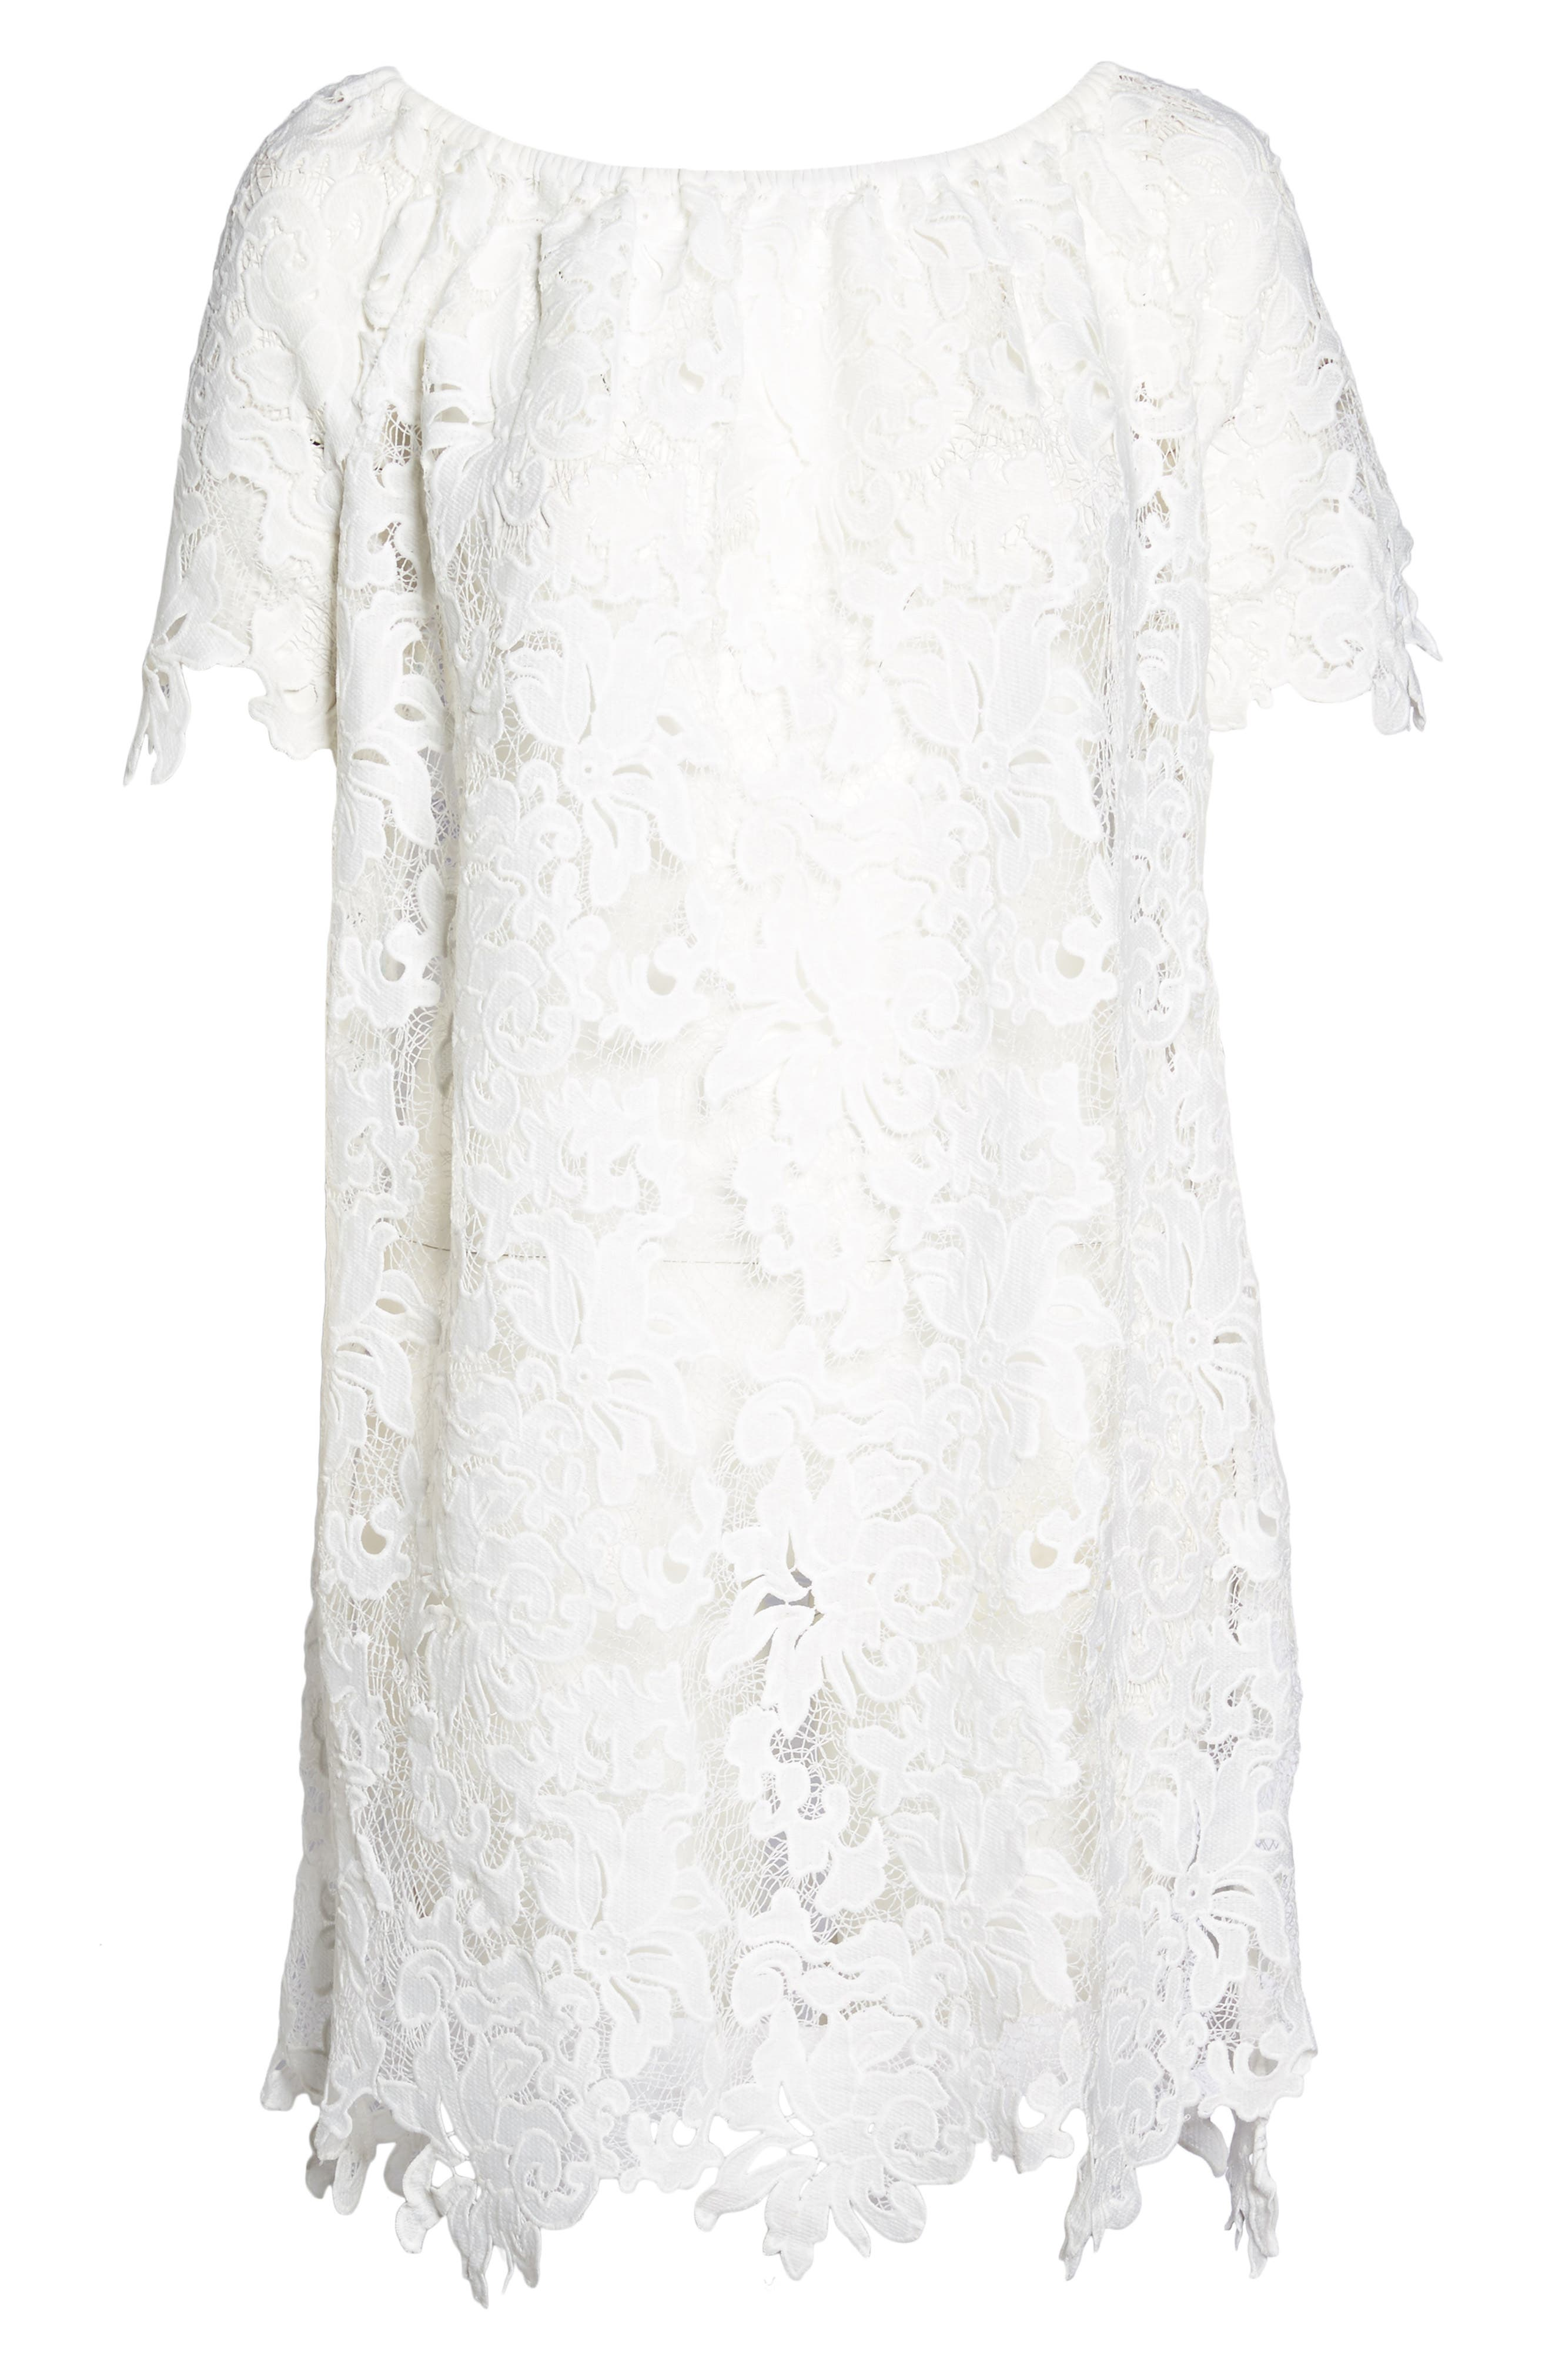 Ode Lace Cover-Up Dress,                             Alternate thumbnail 6, color,                             100